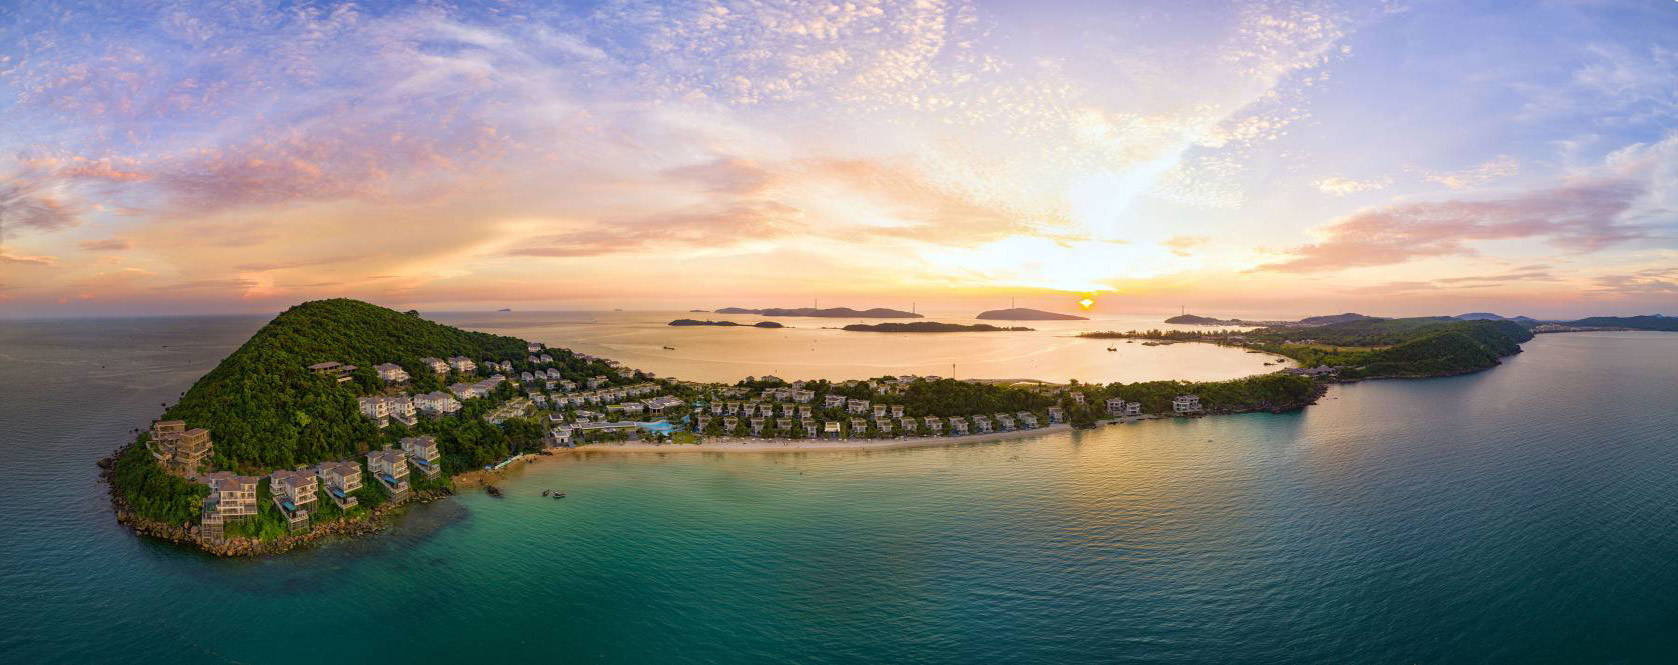 Premier Village Phu Quoc Resort - Managed By AccorHotels